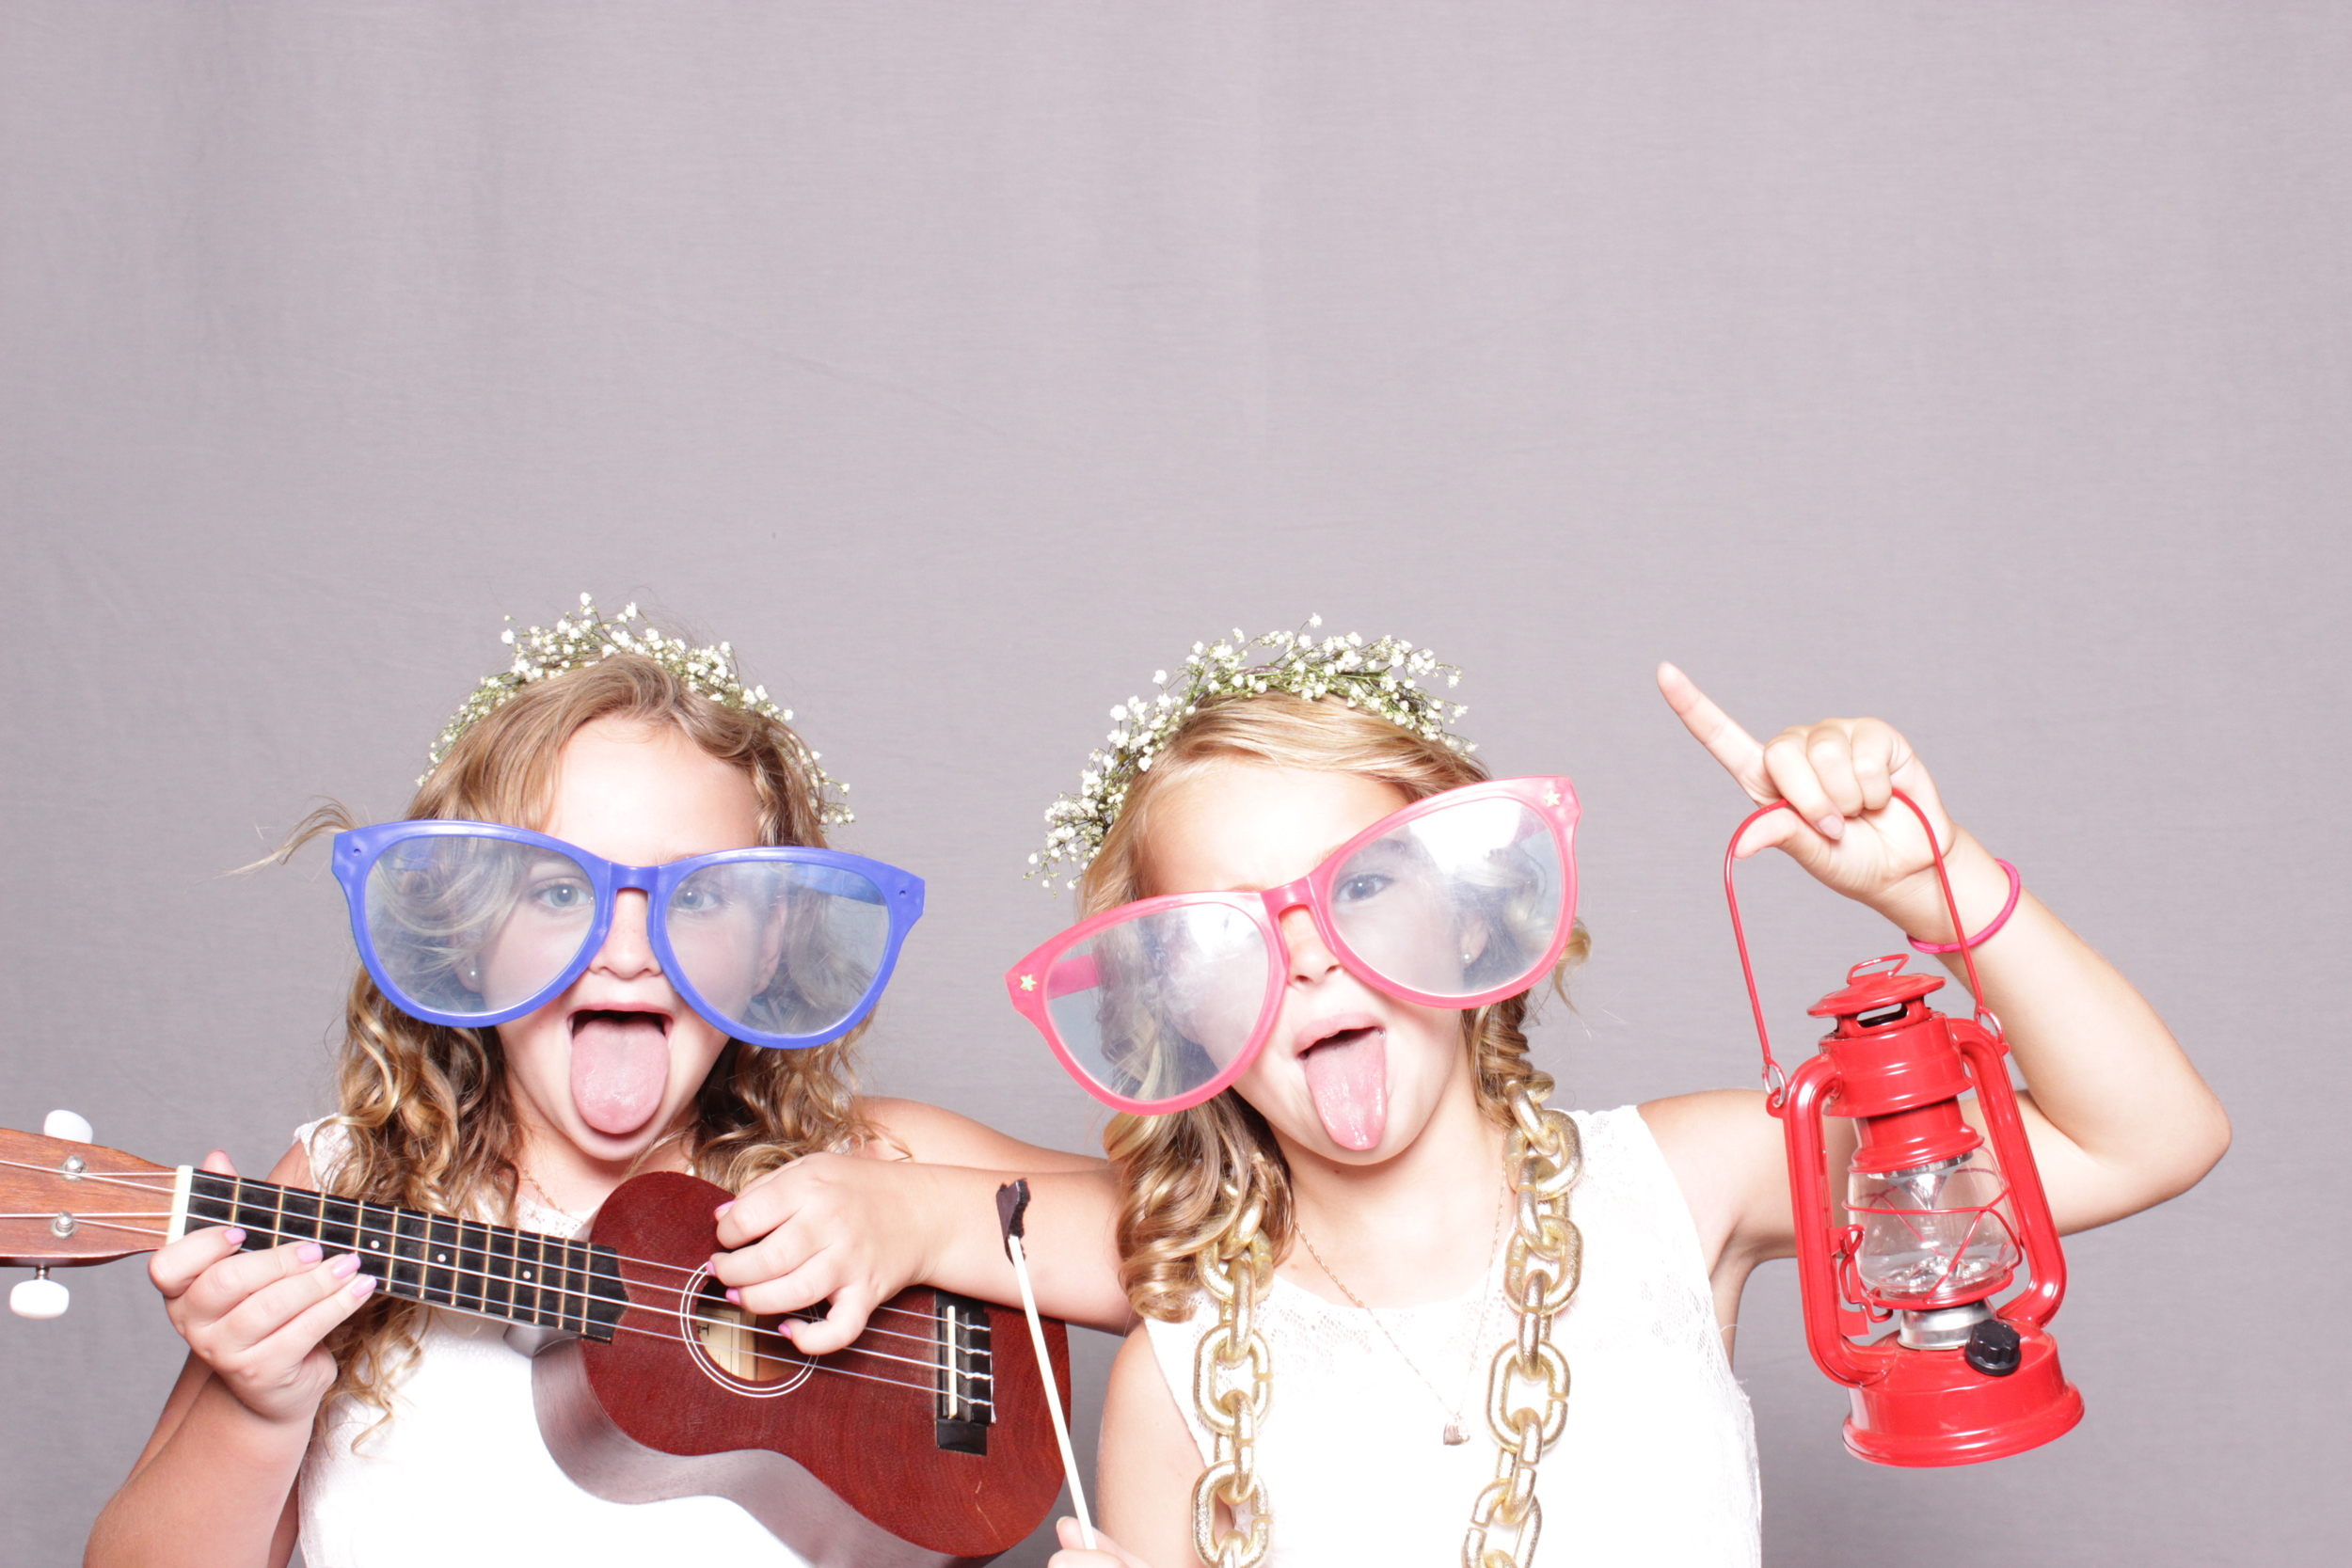 Cameron-Kristen-sacramento-photo-booth_0038.JPG